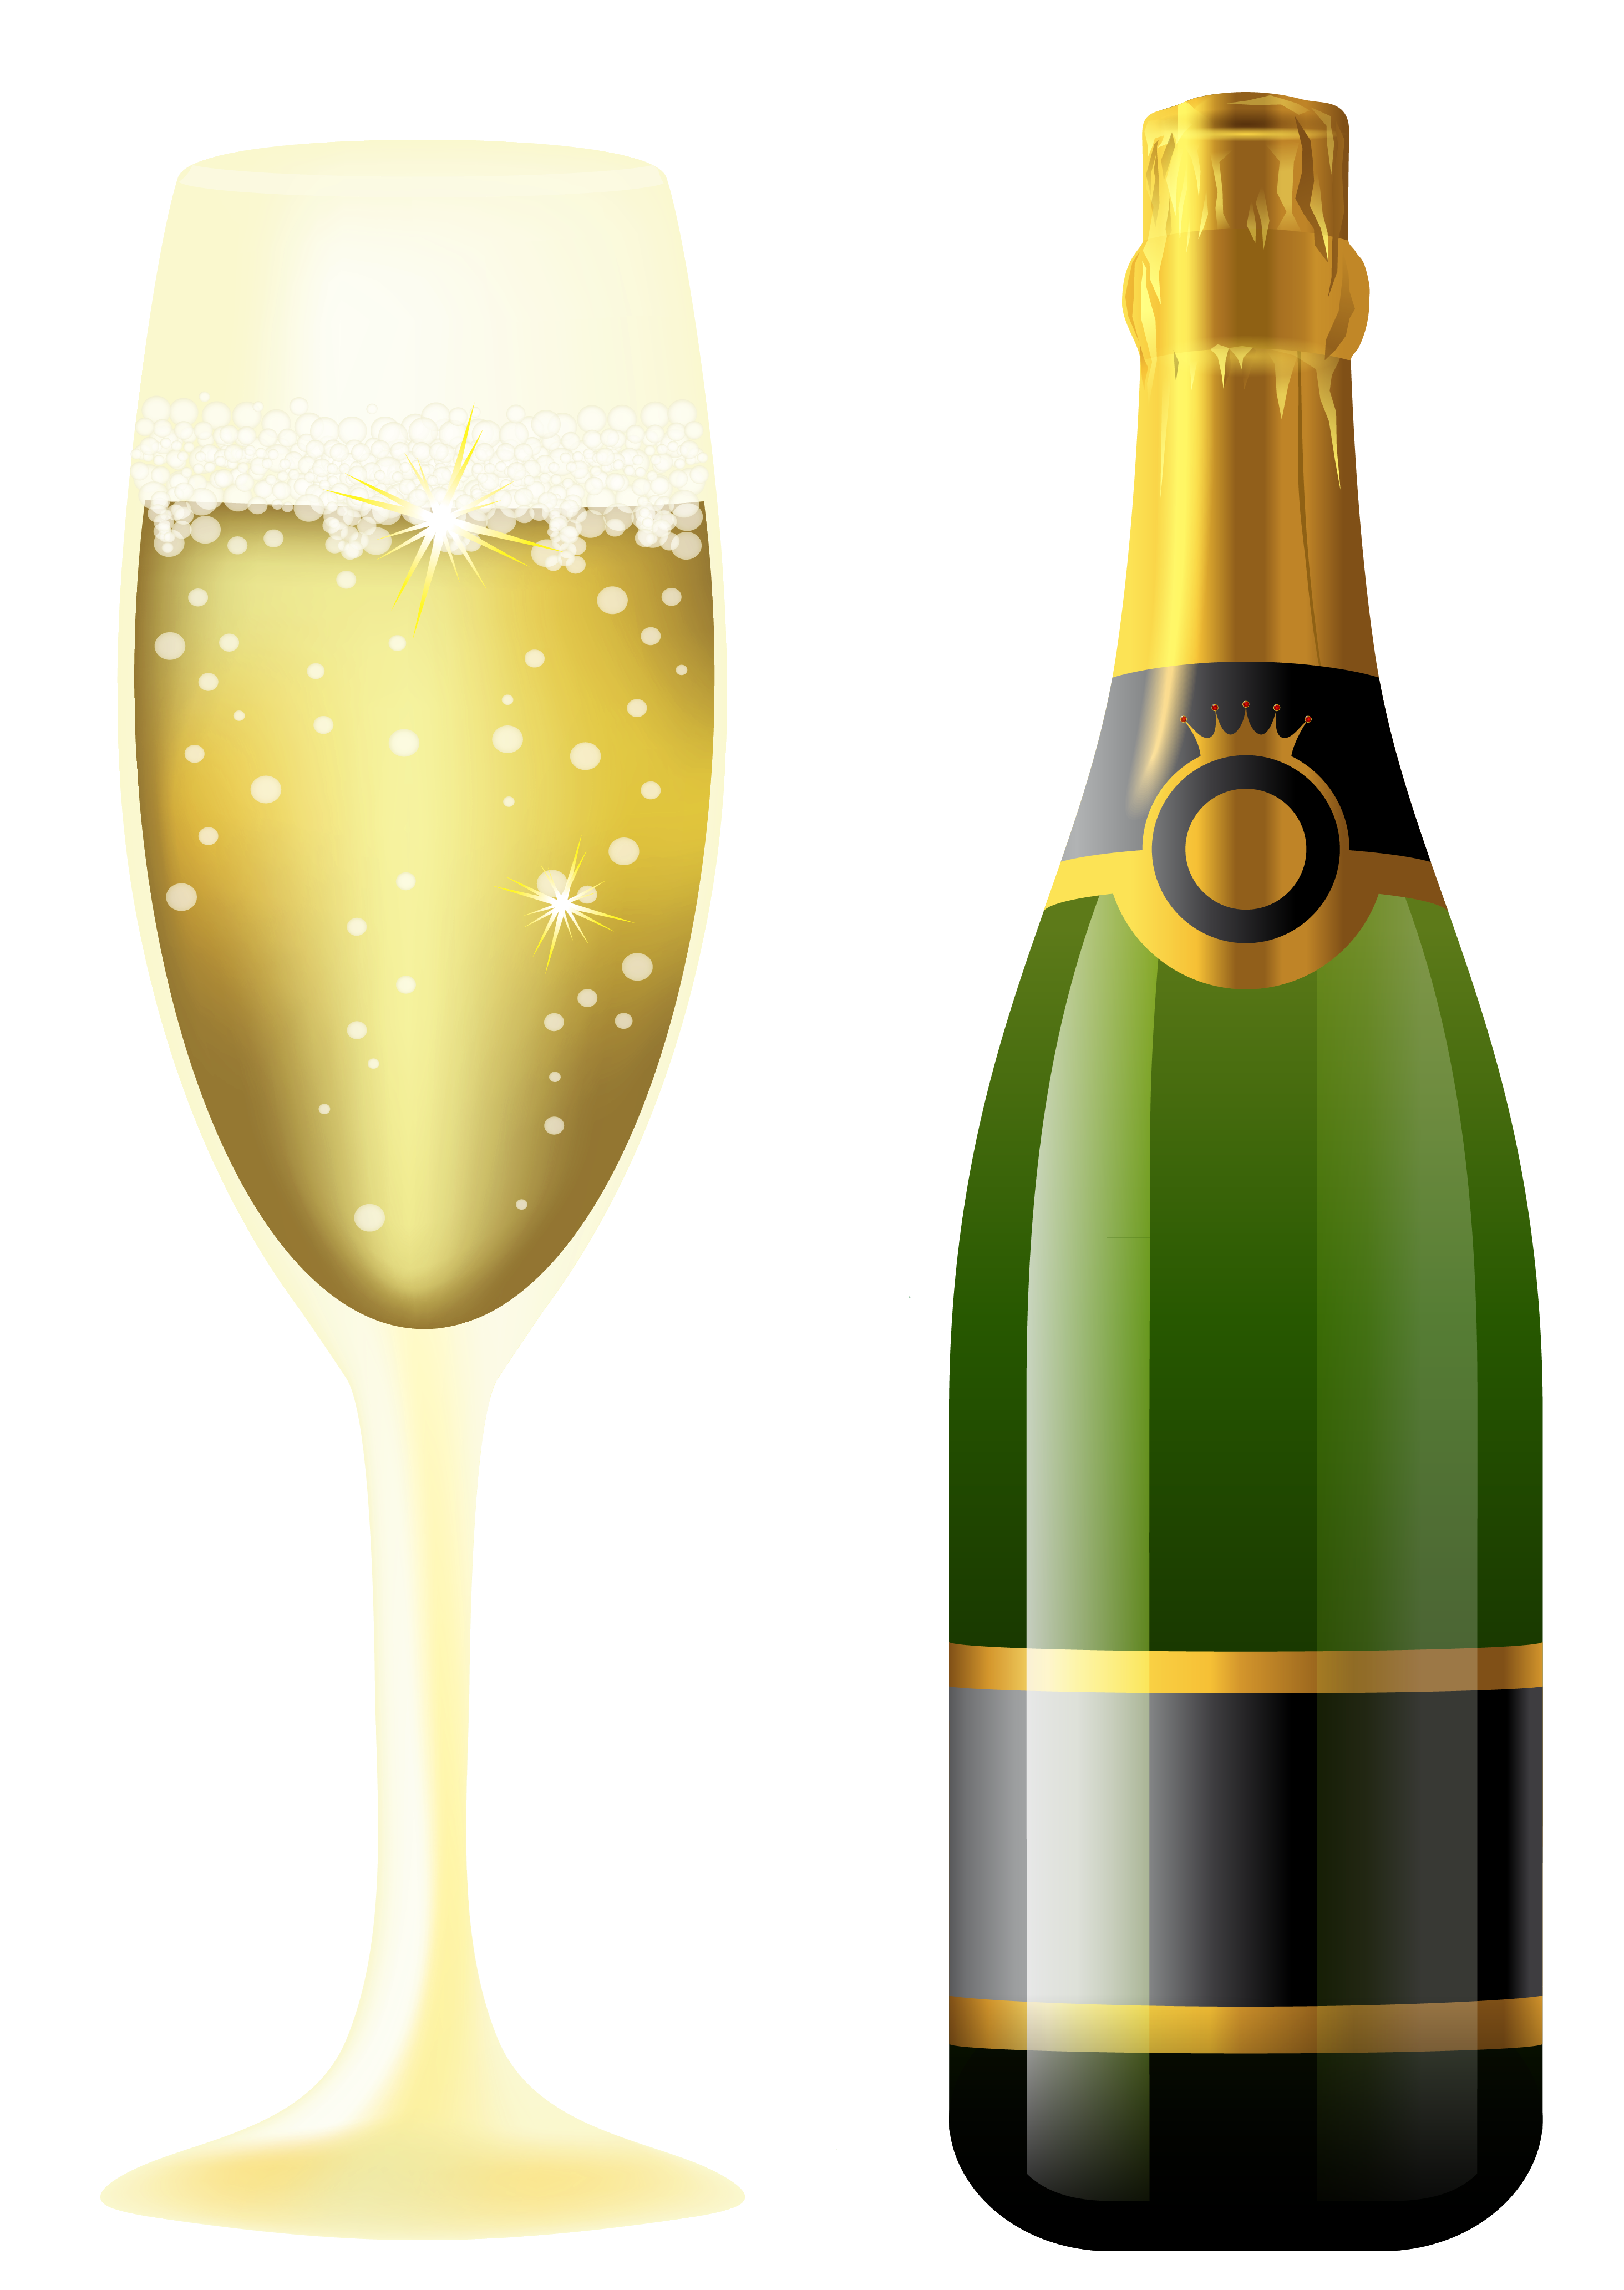 Glass clipart new year. Sparkling wine and gallery